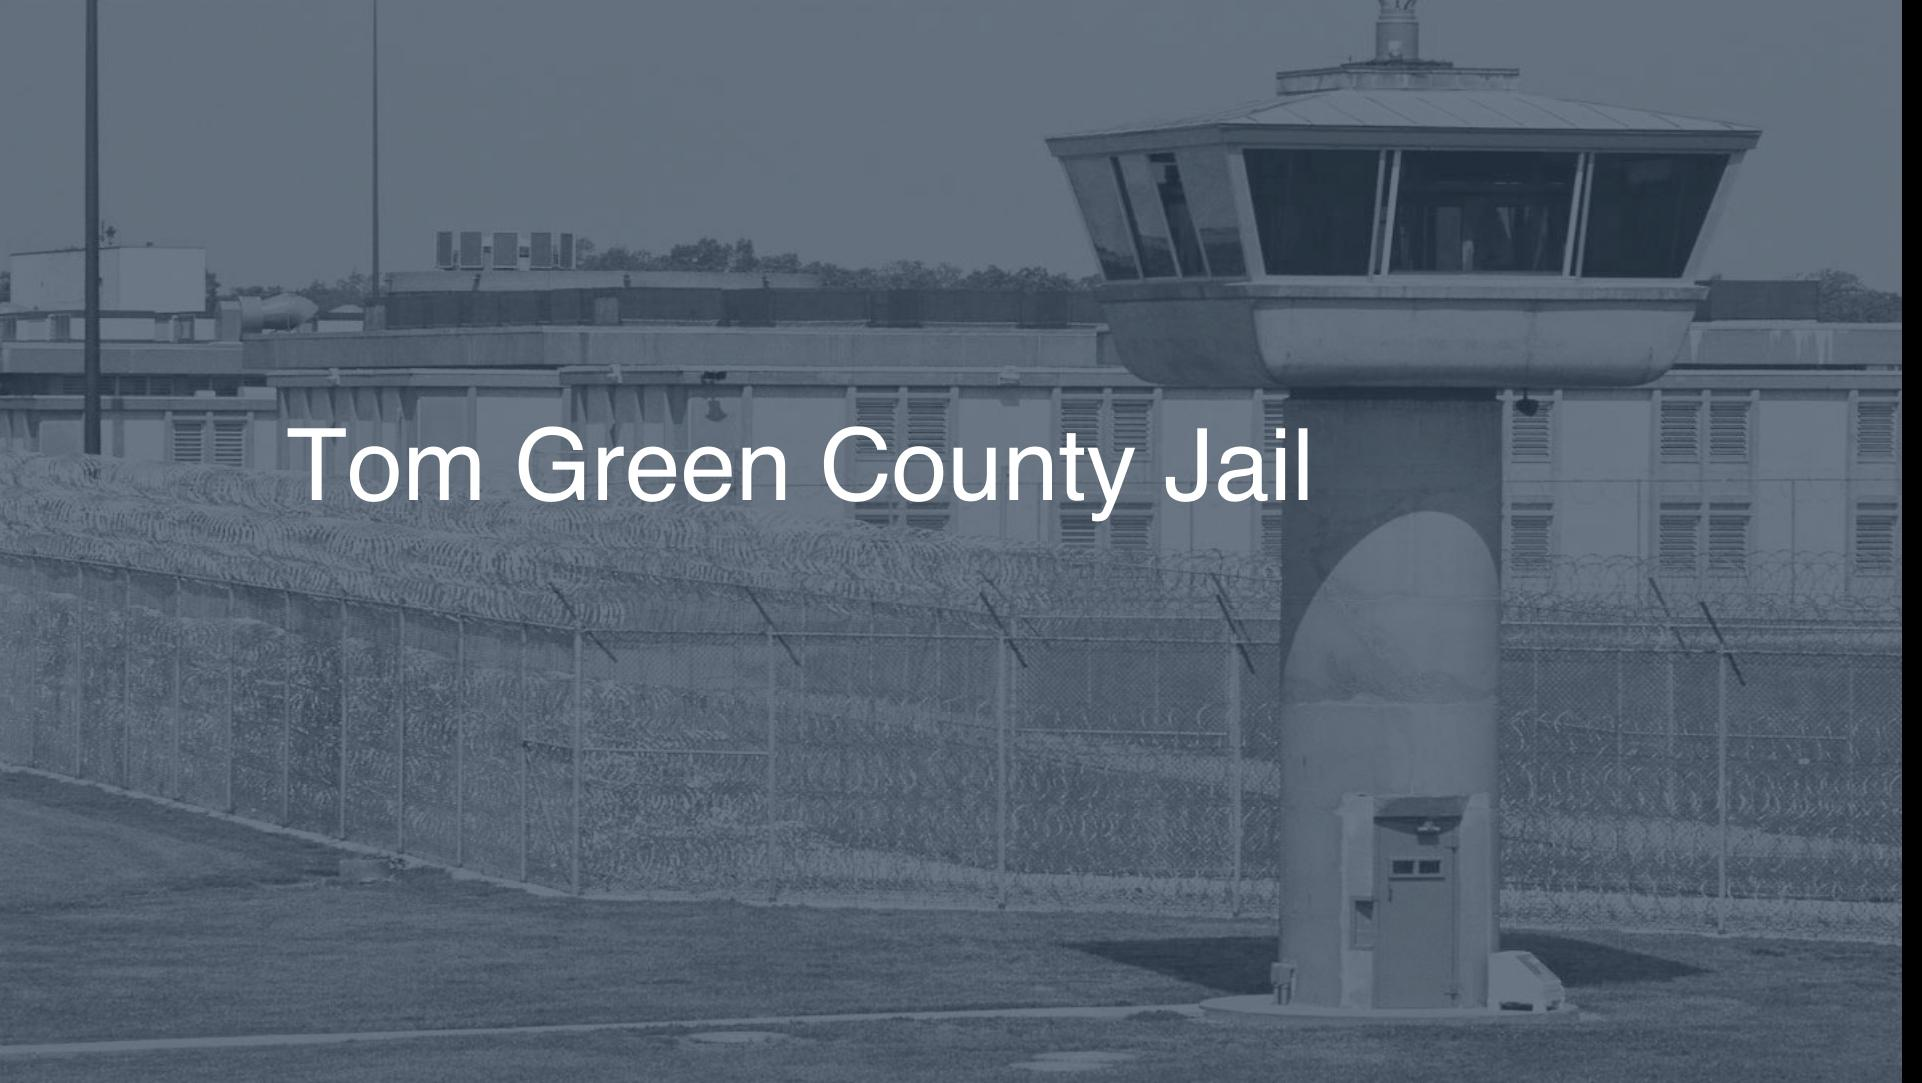 Tom Green County Jail correctional facility picture